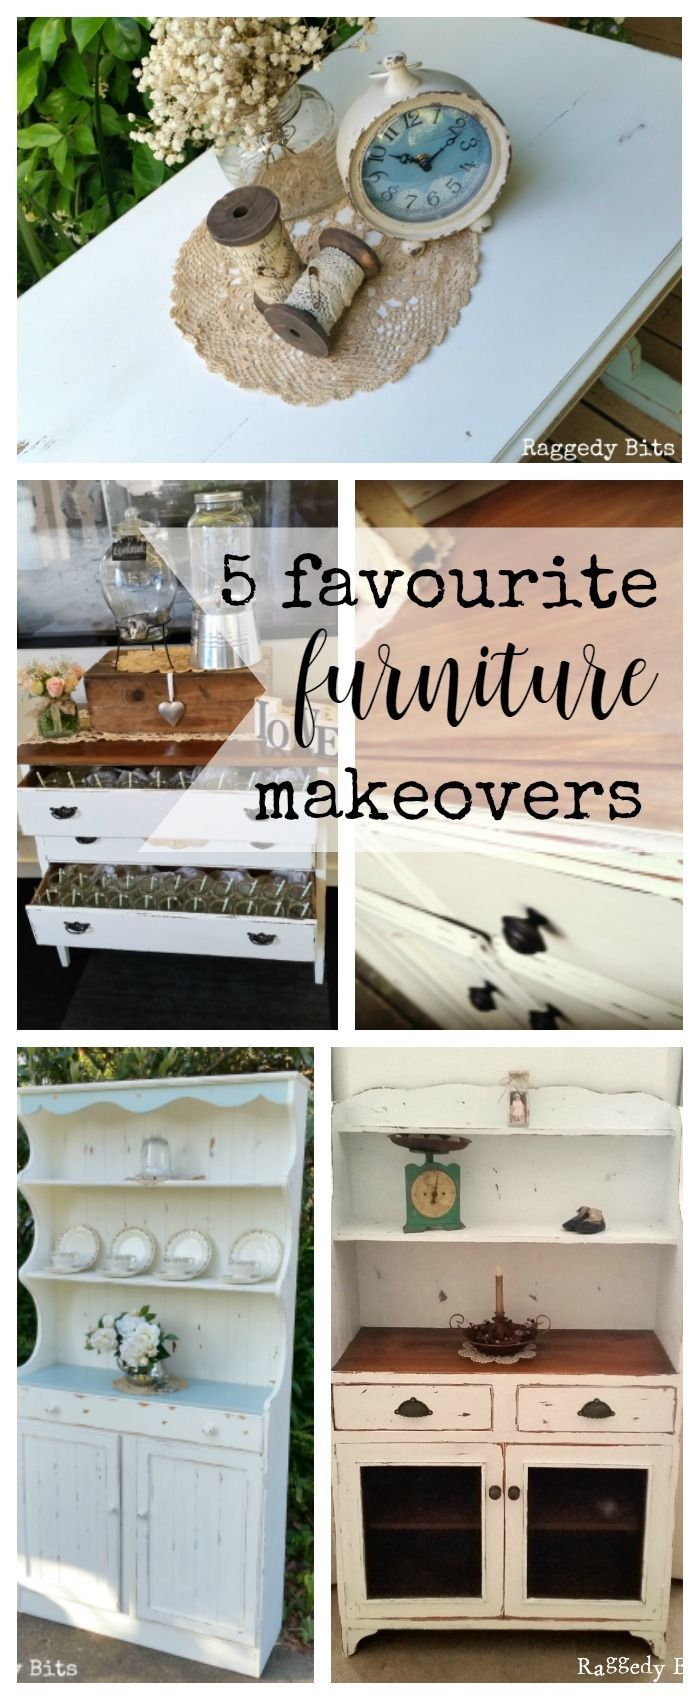 A collection of 5 Favourite Furniture Makeovers | http://www.raggedy-bits.com